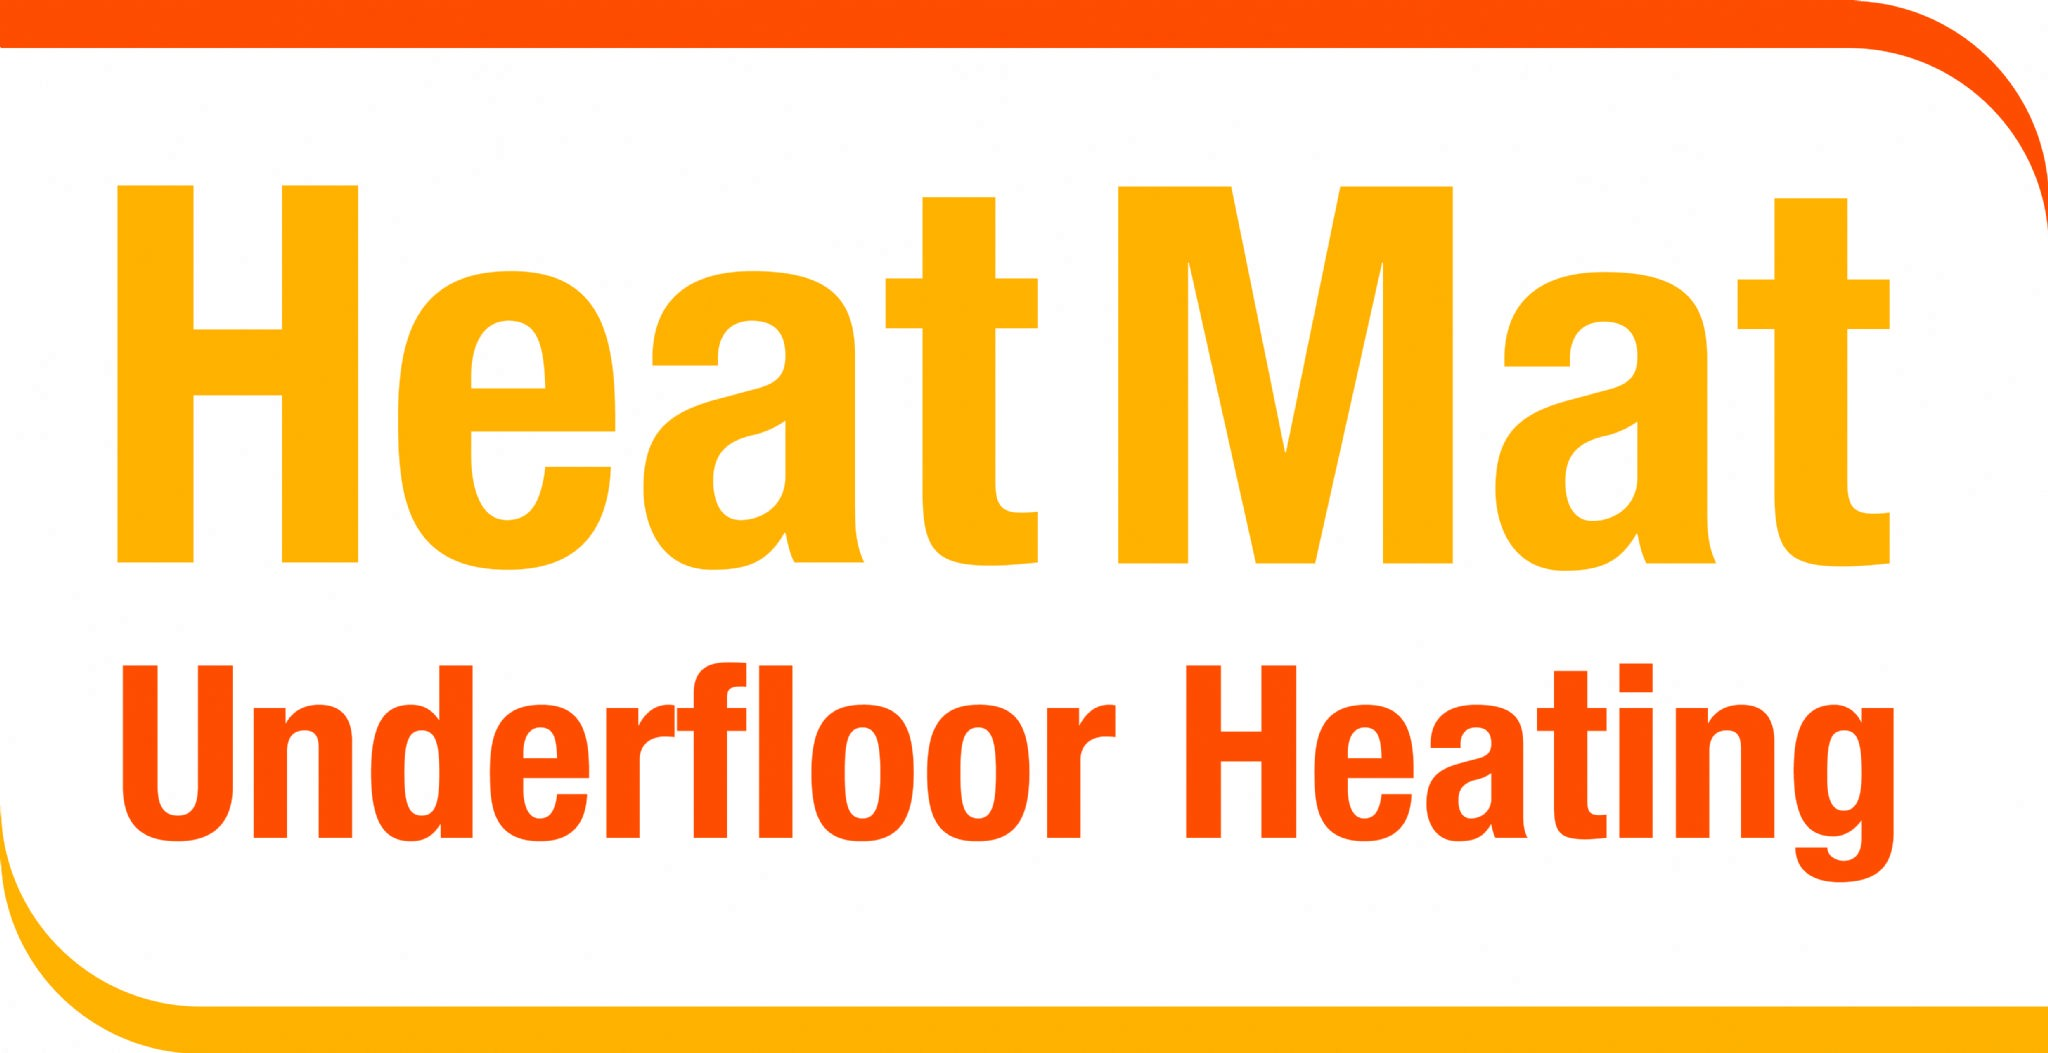 HEATMAT UNDERFLOOR HEATING